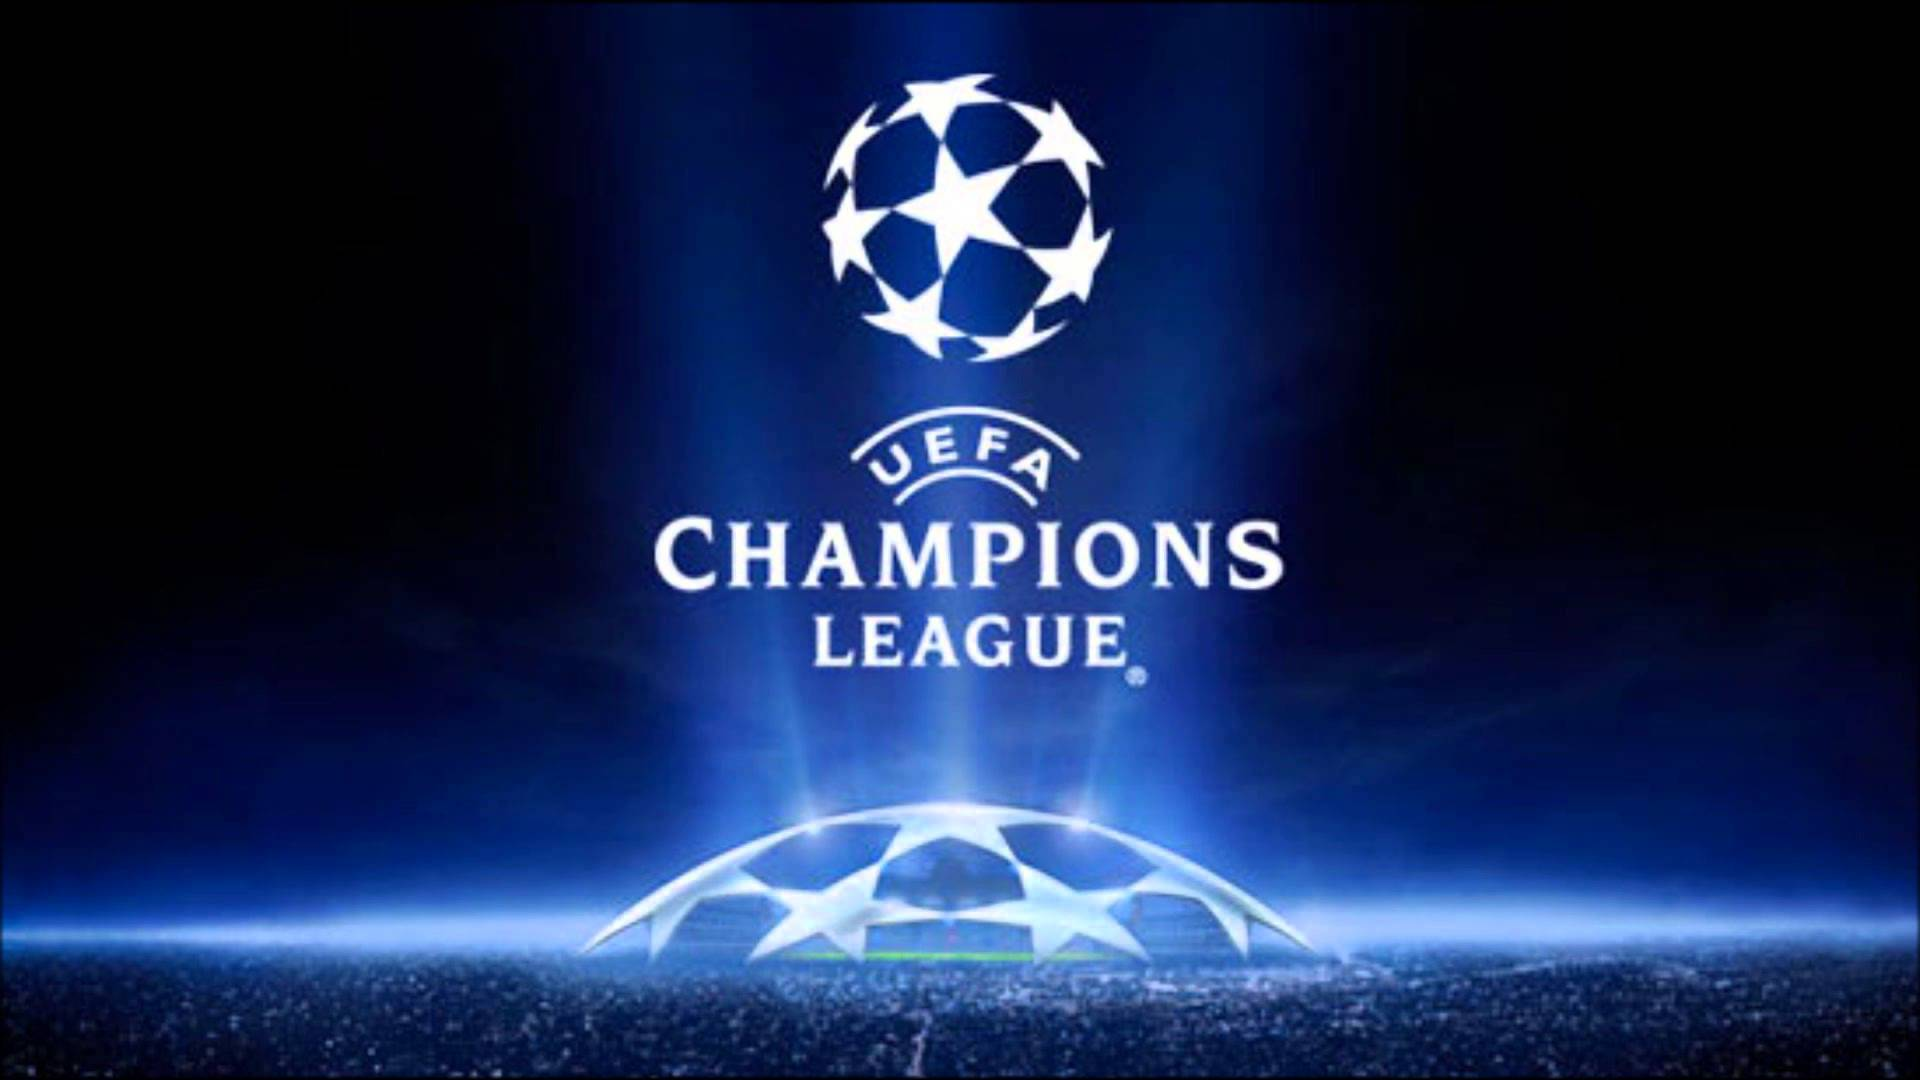 champions league and europa league finals will be free to watch on youtube